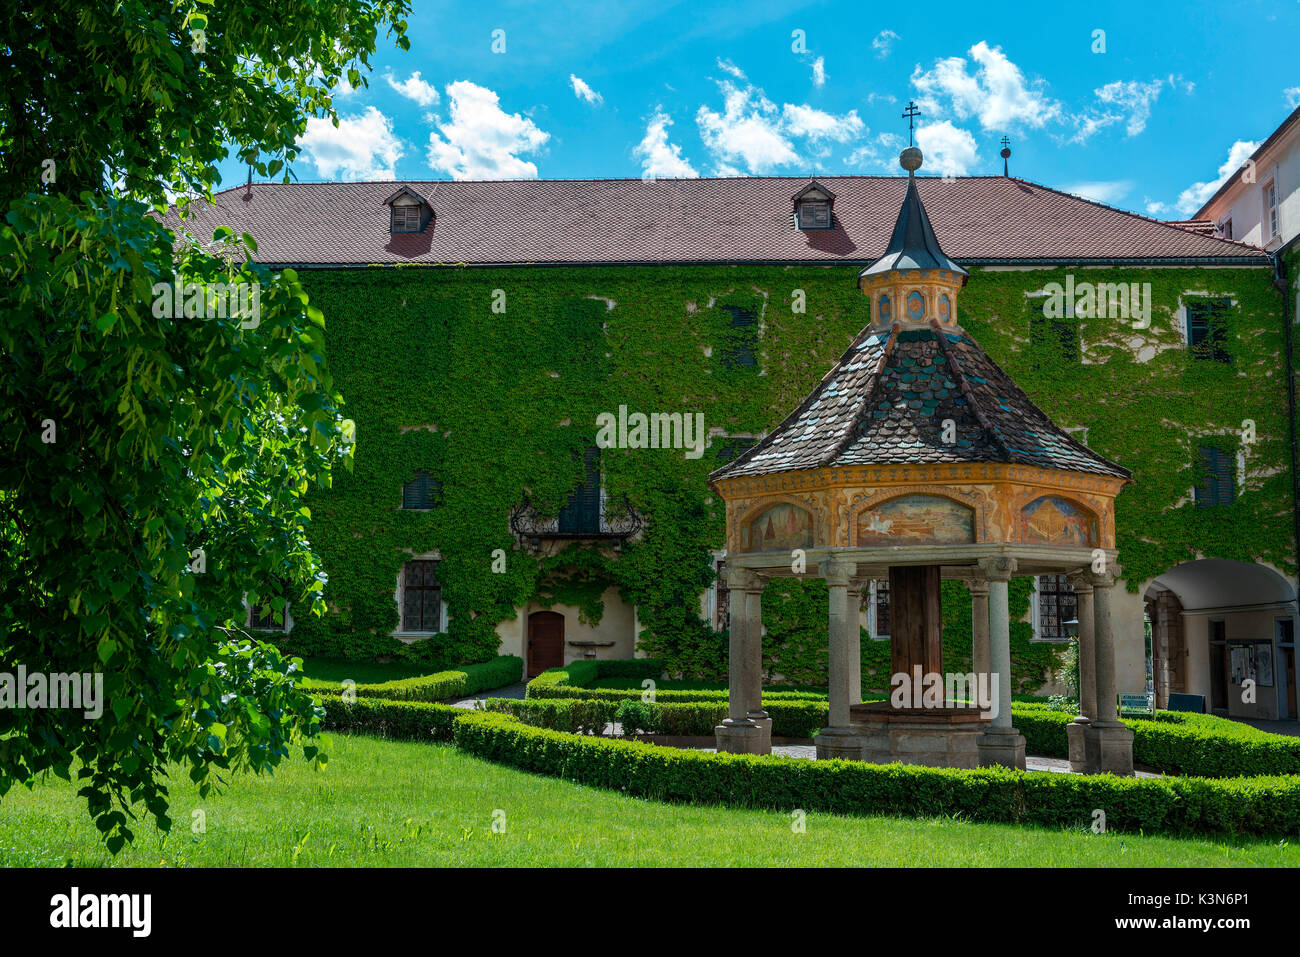 Novacella/Neustift, South Tyrol, Italy. The Fountain of Miracles in  Monastery Novacella/Neustift shows images of - Stock Image